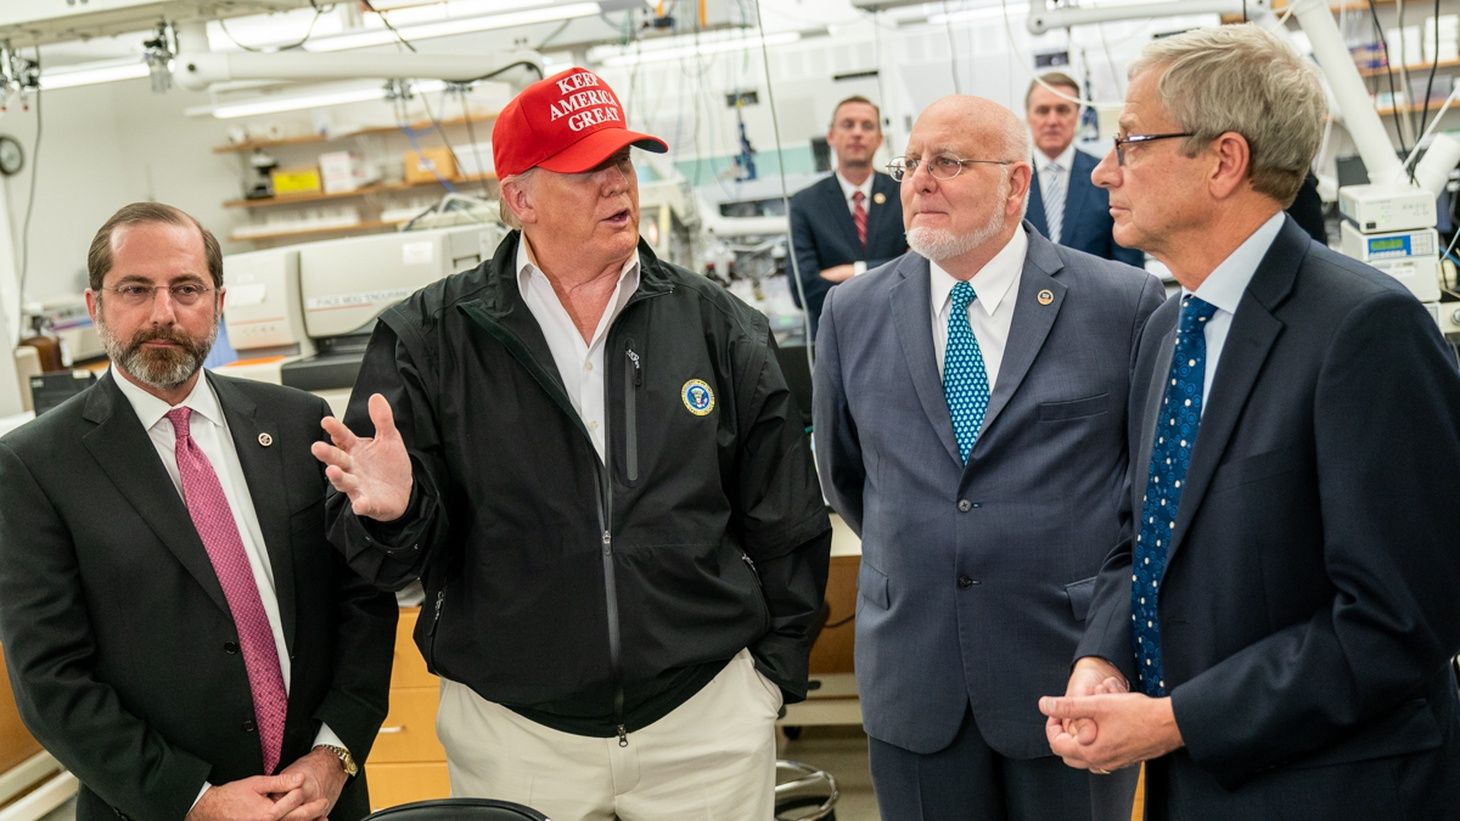 President Donald J. Trump, joined by the Secretary of Health and Human Services Alex Azar (left), Dr. Robert R. Redfield, director of Centers for Disease Control and Prevention, and Dr. Stephan Monroe, associate director of the CDC (right), speaks with reporters during a visit to the CDC on March 6, 2020, in Atlanta.